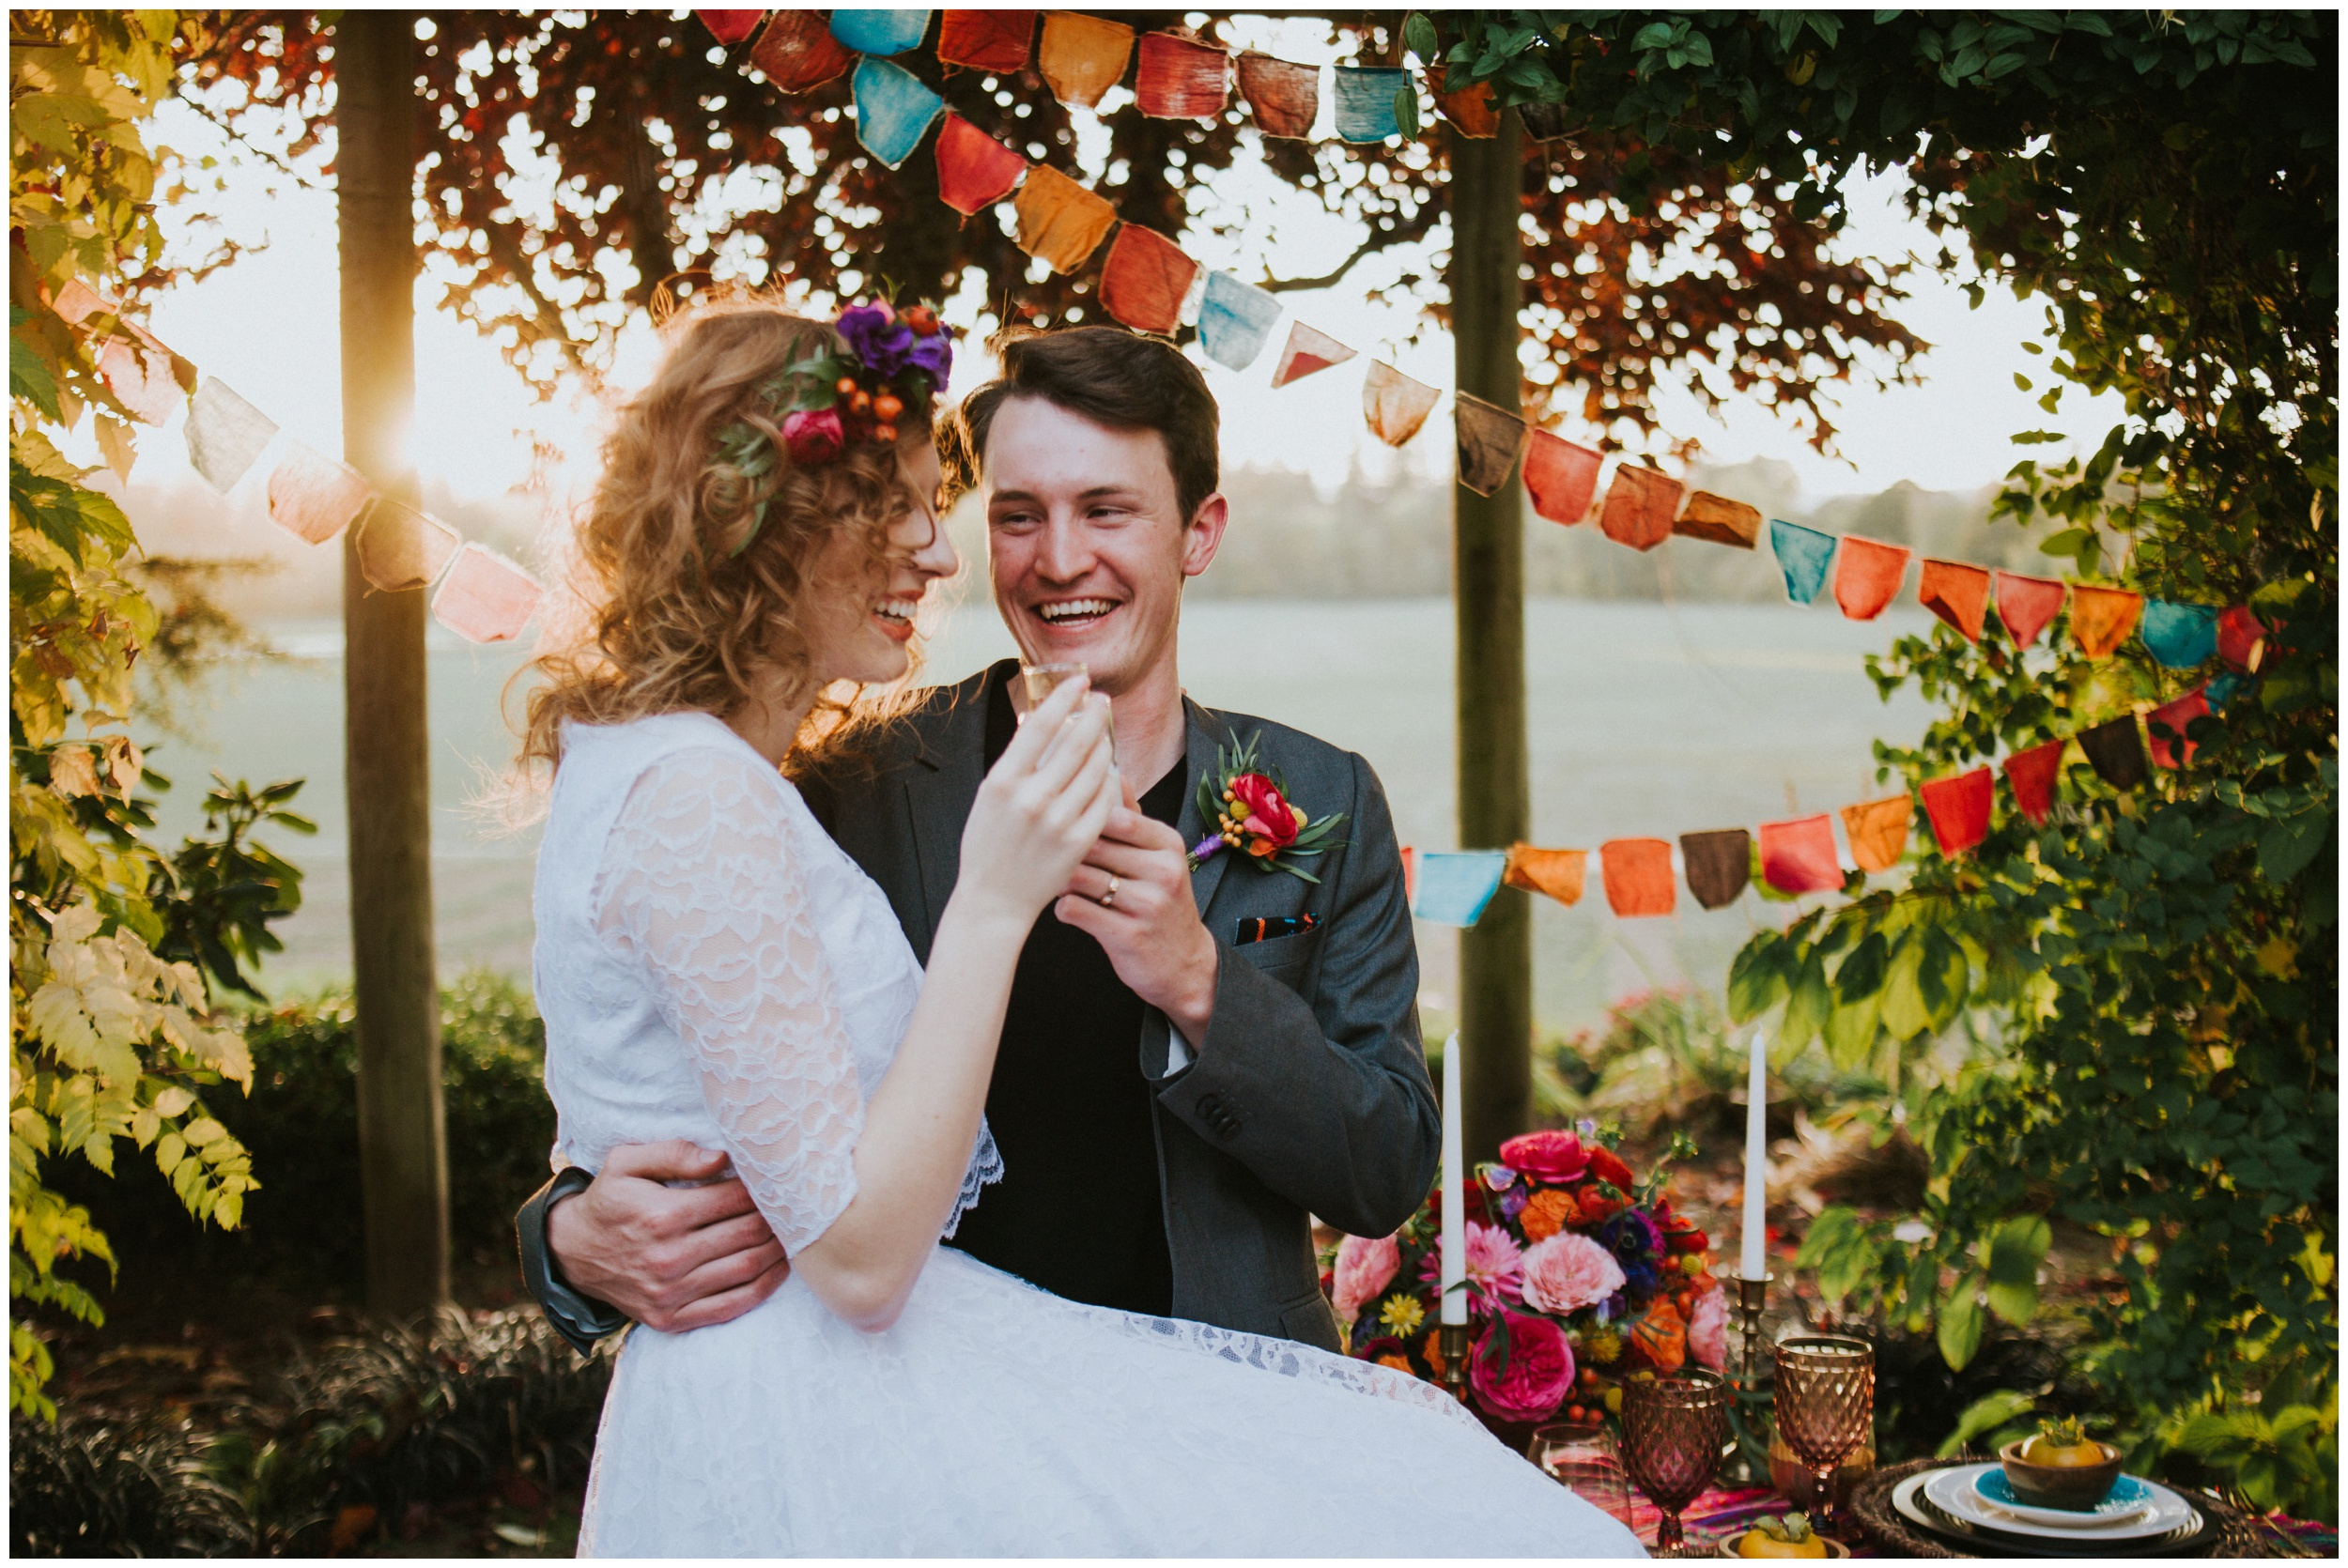 fiestathemedwedding-oregonwedding45.jpg